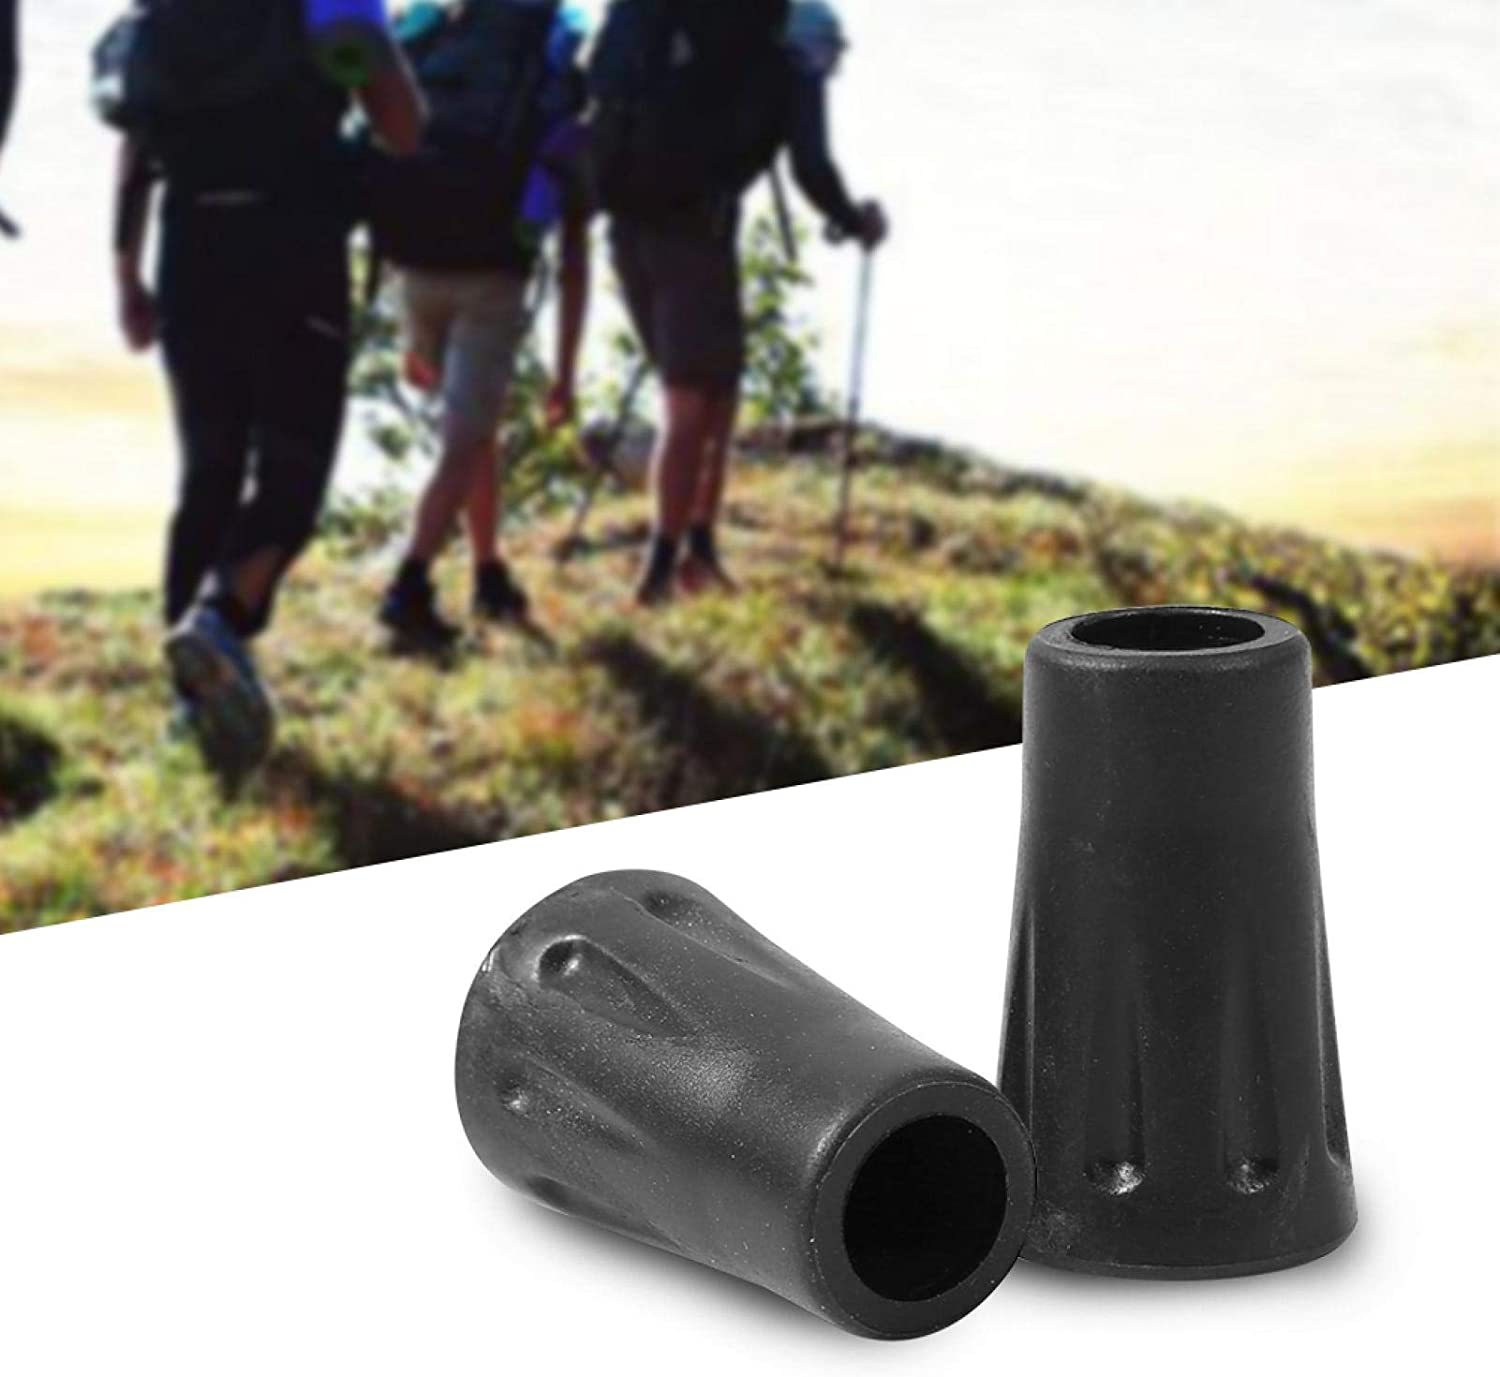 July Gifts Hiking Pole Replacement Limited price Jacksonville Mall Protect Stick Rubber Walking